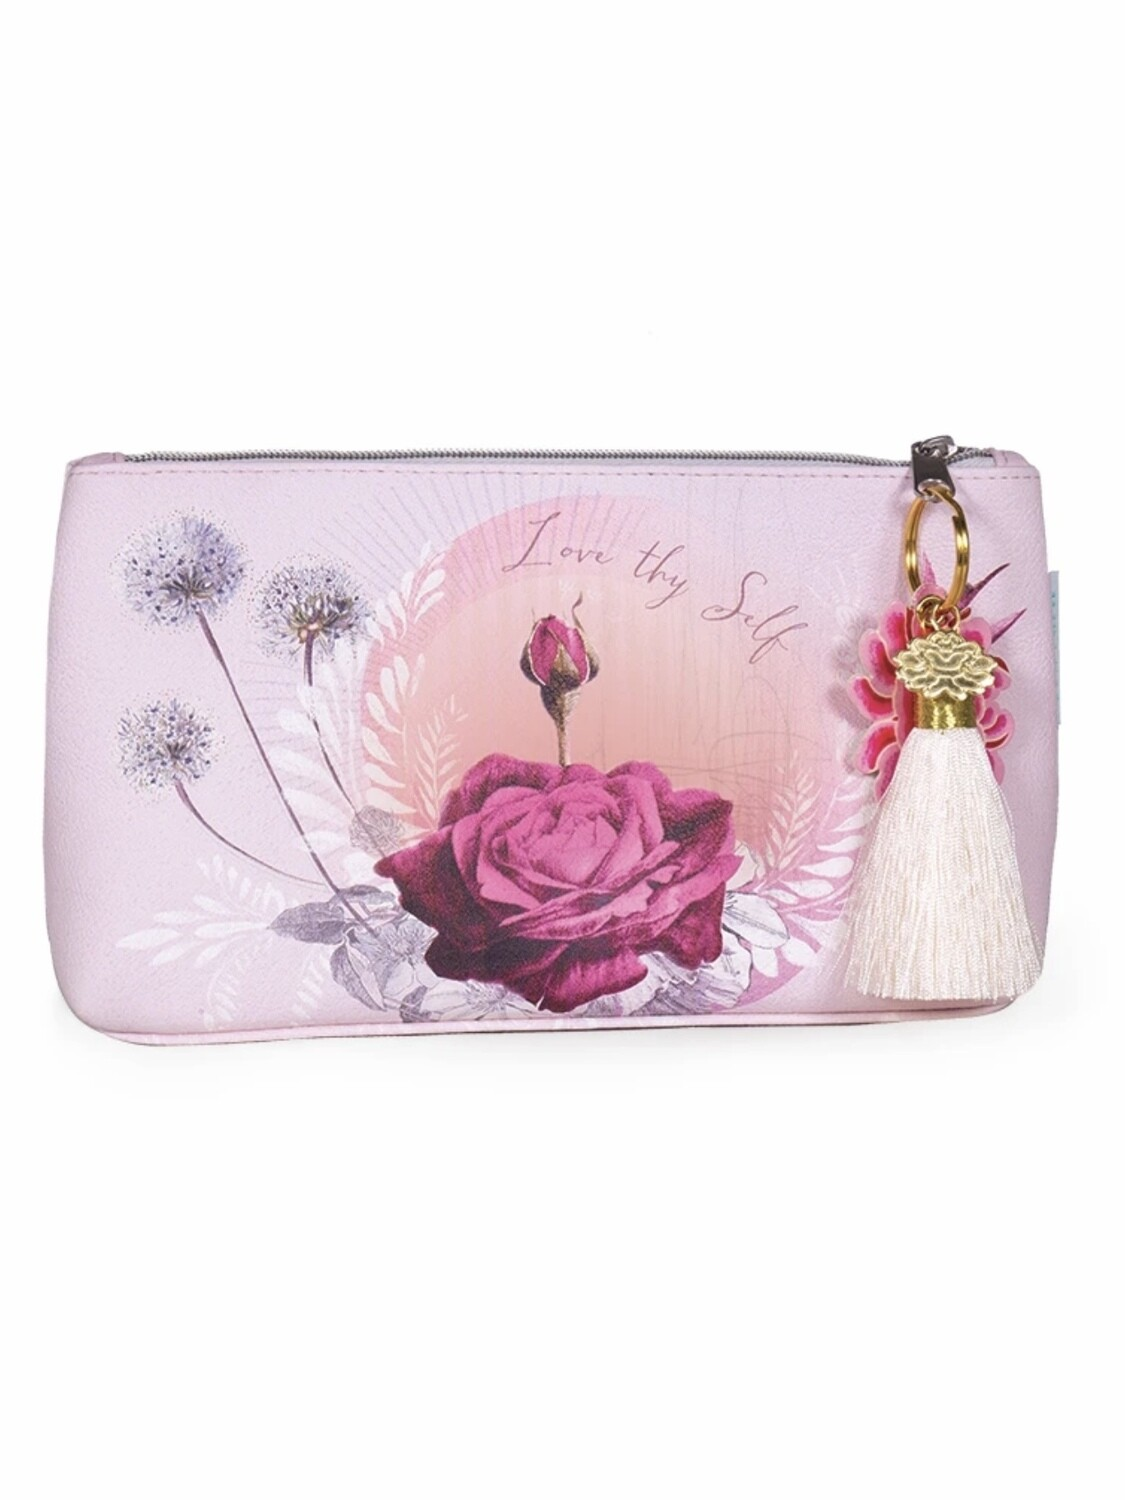 Love Thyself Rose Small Pouch - PAB27